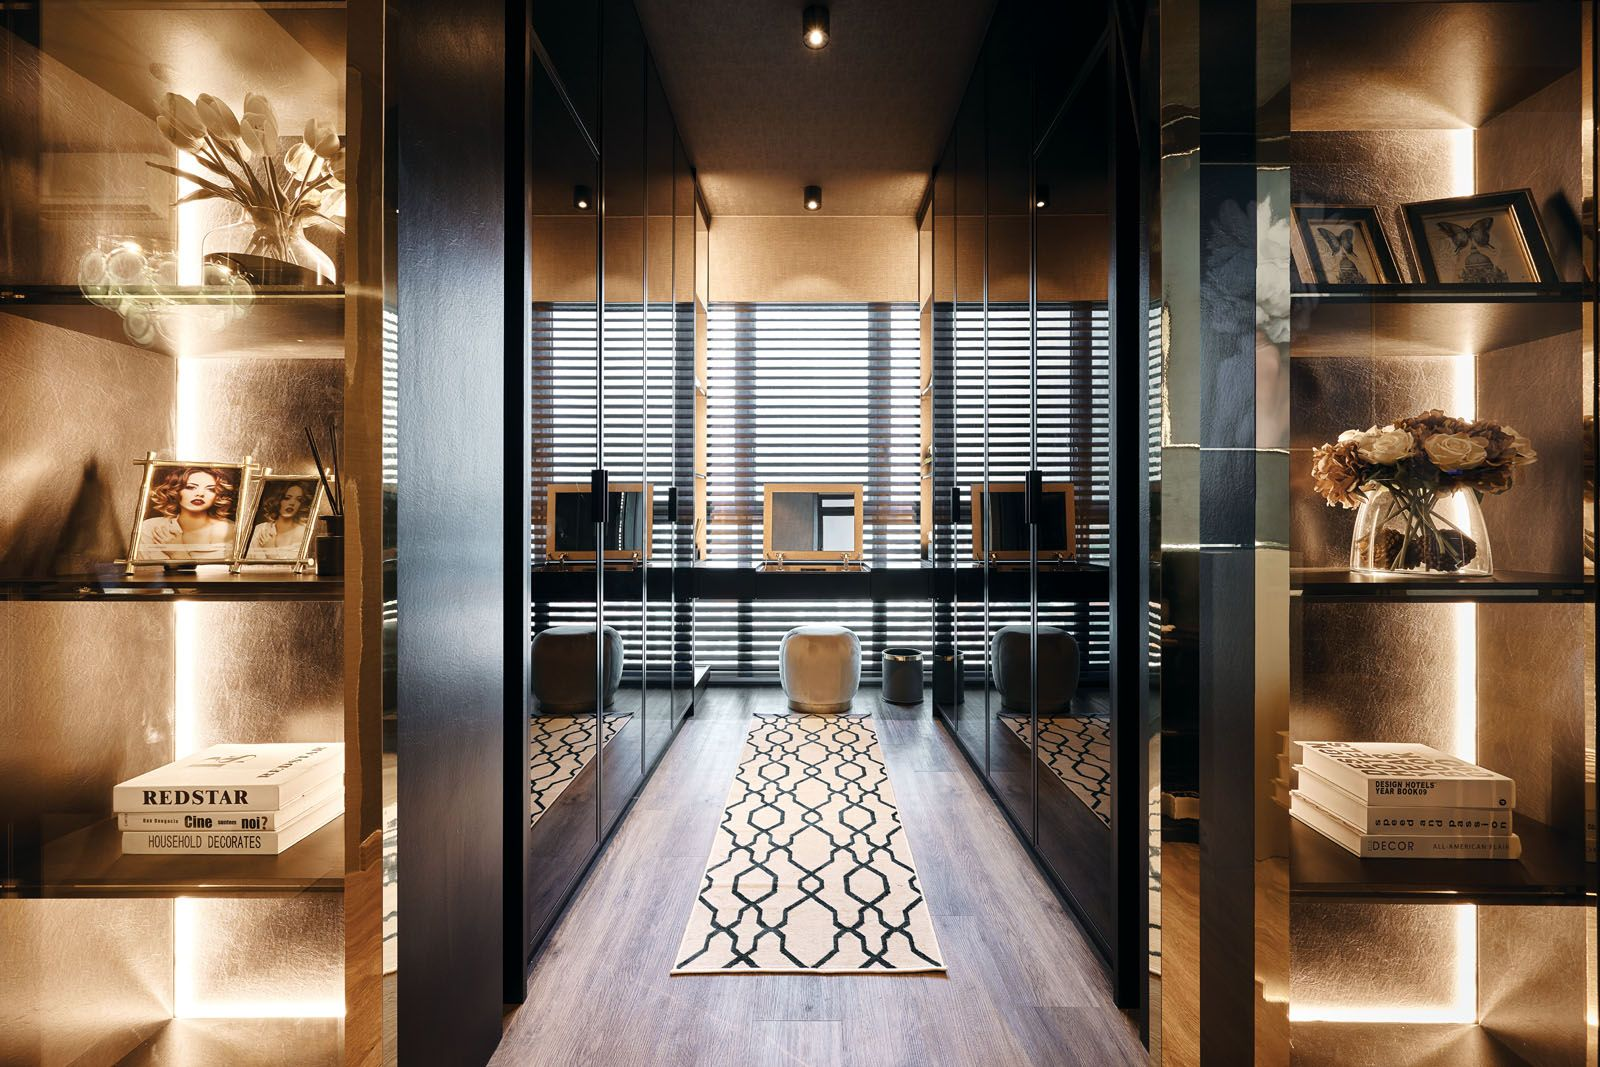 Flanked by built-in cabinetry on both sides, the walk-in wardrobe can be fully enclosed to serve as a workspace